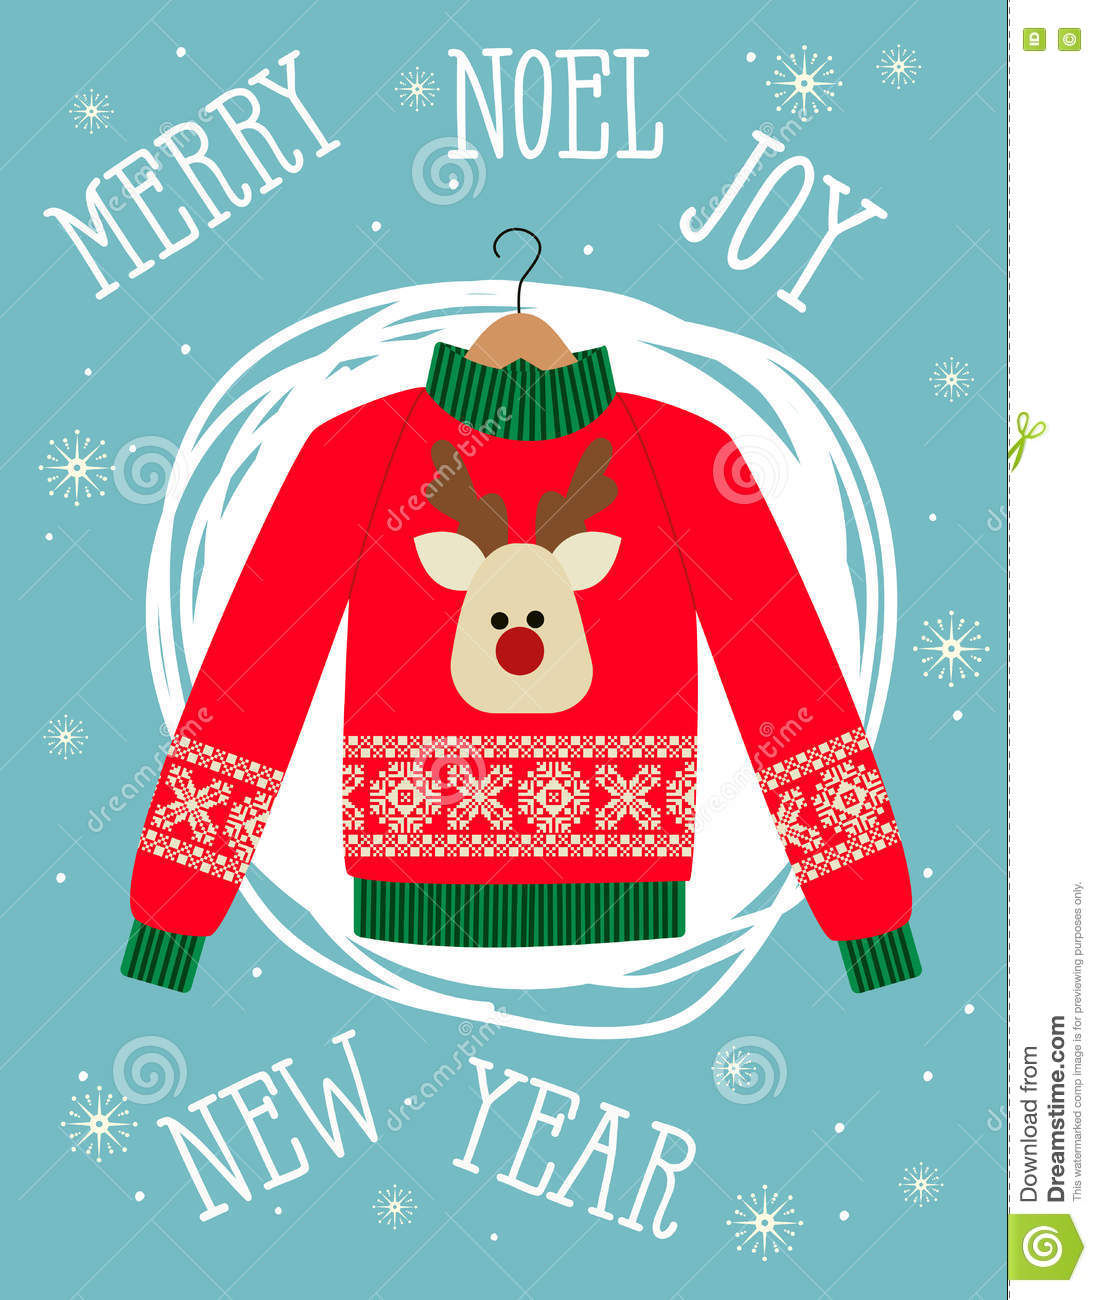 d33239d5b5876 Illustration of a red Christmas sweater with deer.Funny holiday background. Bright  Christmas card